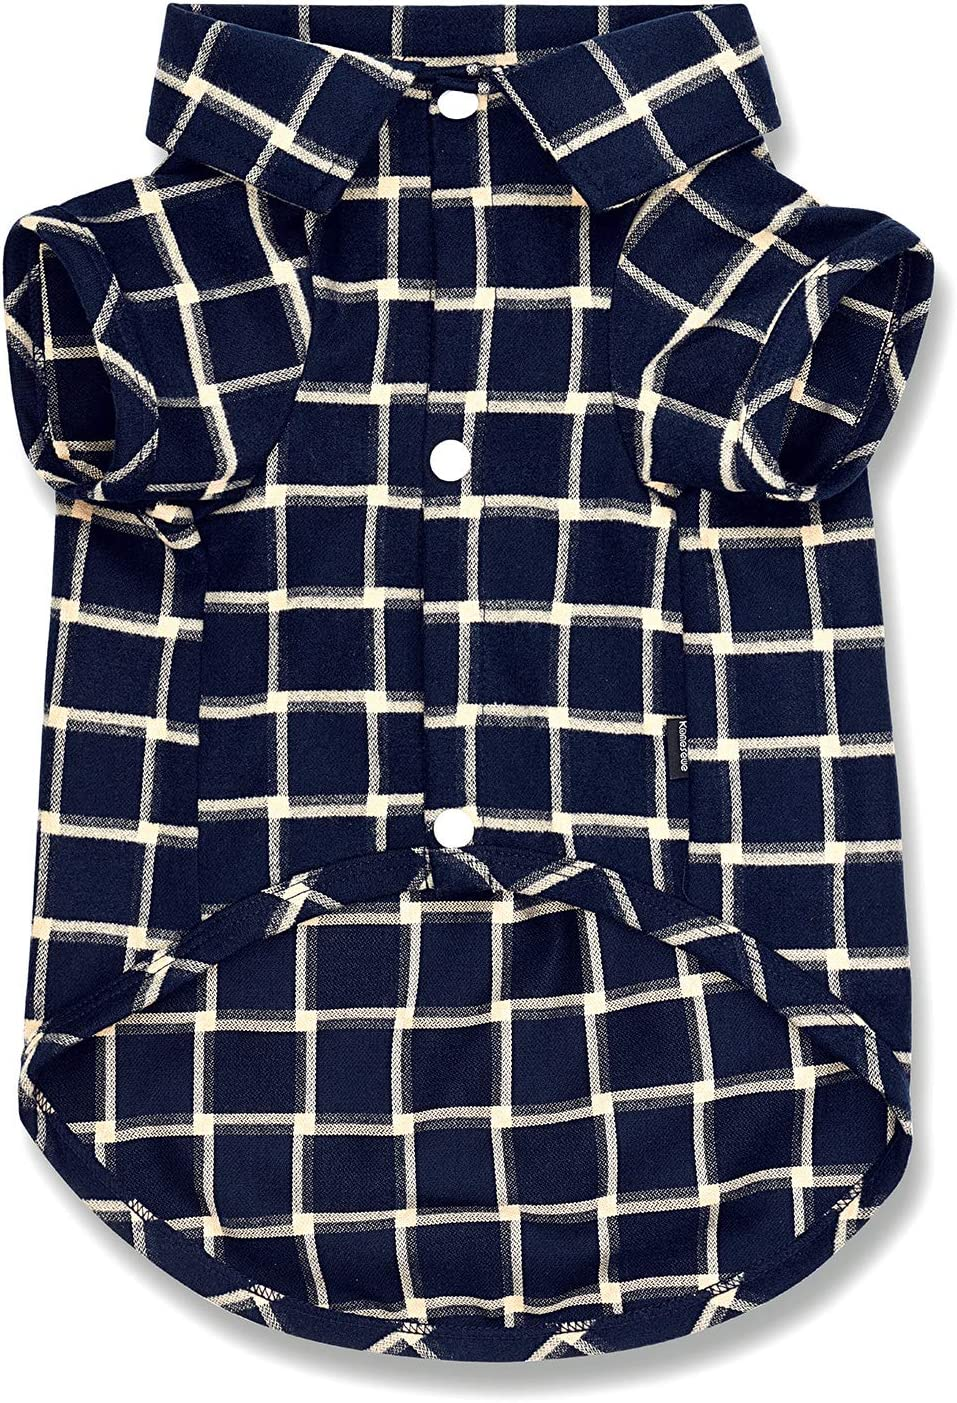 Koneseve Dog Shirt, Pet Plaid Shirts Clothes T-Shirt, Sweater Bottoming Shirt Soft for Small Dogs Cats Puppy Grid Apparel Adorable Every Day Pajamas Costumes fit for Christmas { Blue#2; 3XL } : Pet Supplies